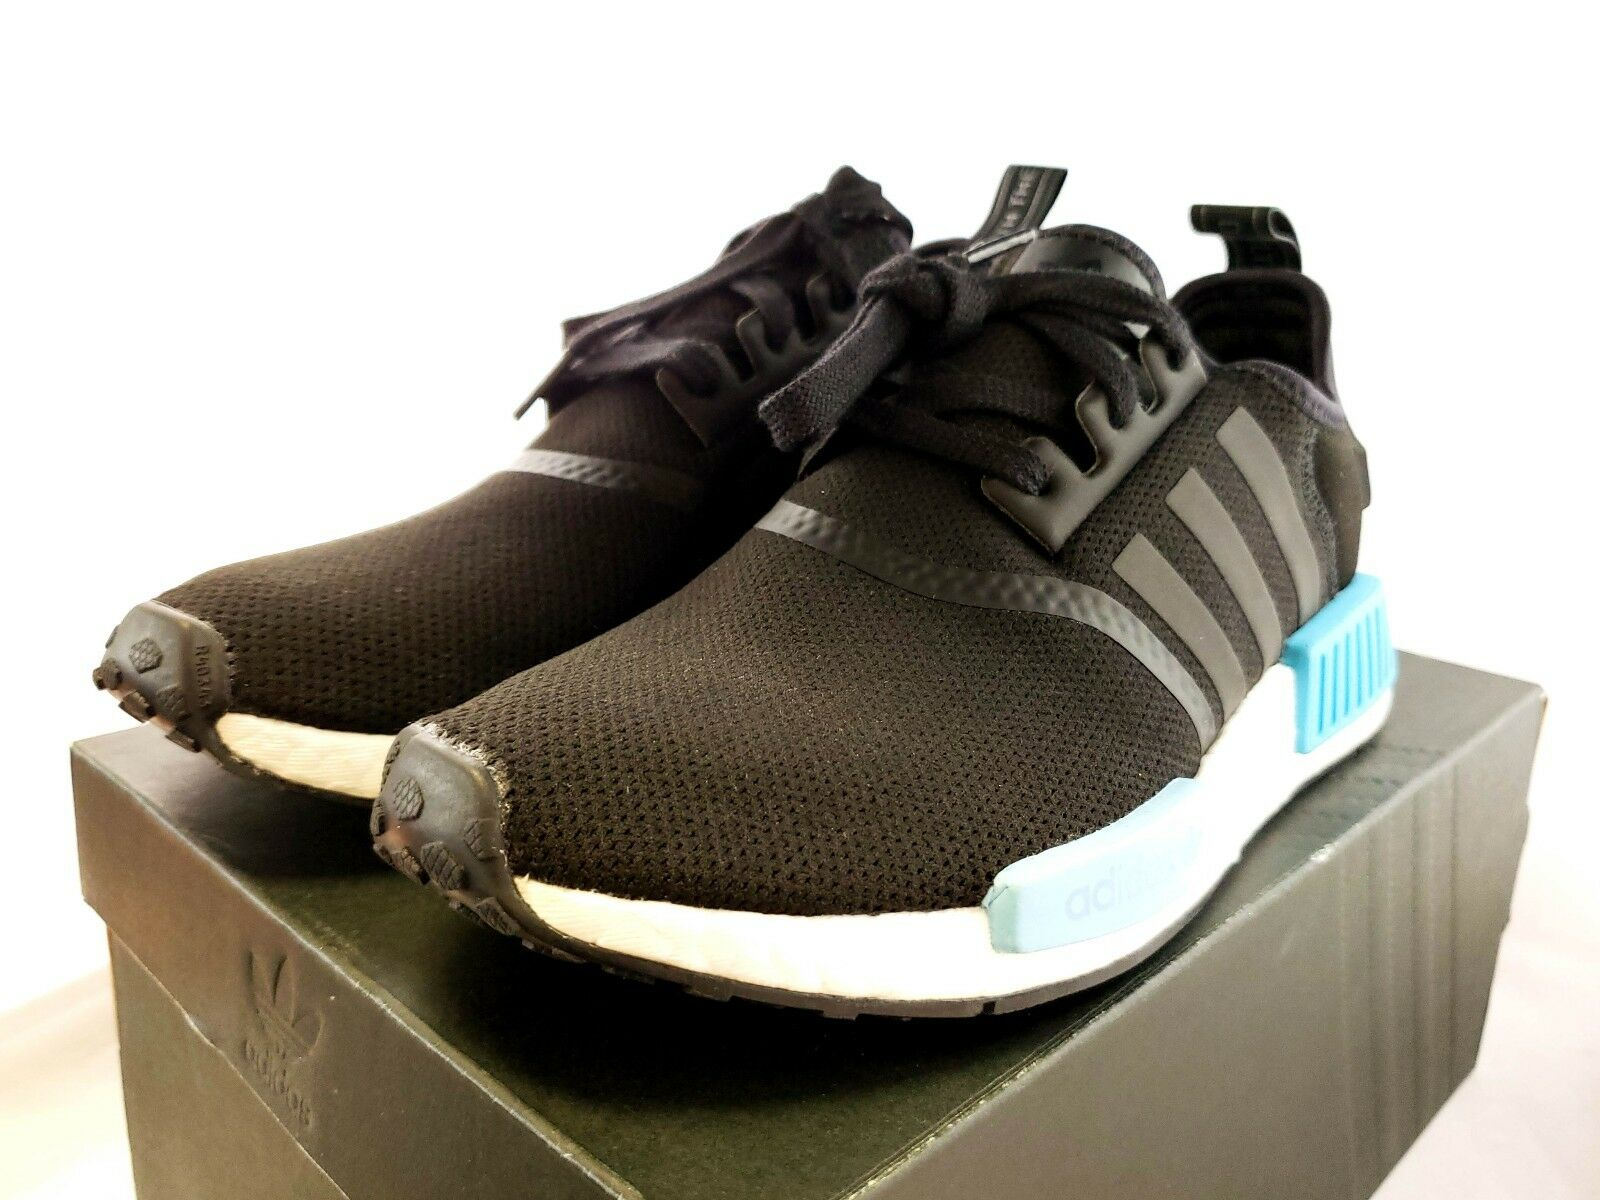 6b1d4a4d5f4c8 adidas NMD R1 W Black Icey Blue Light Ice By9951 Women Size 8.5 for ...